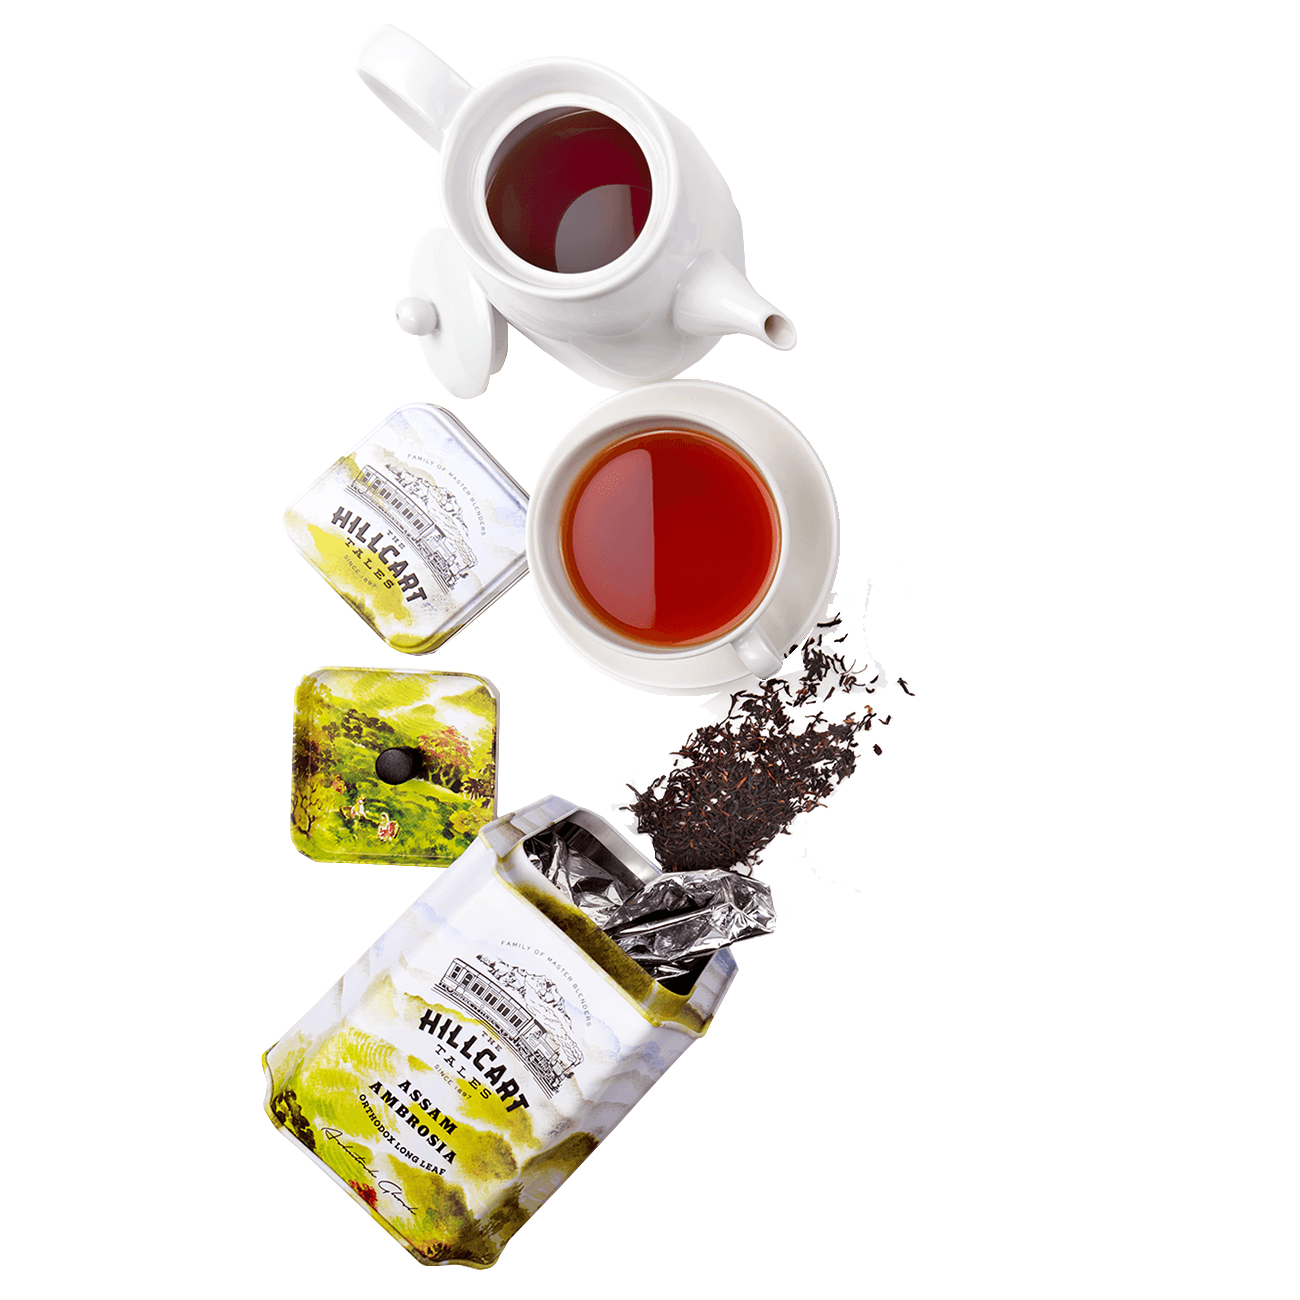 catalog/black-tea/assam-ambrosia-t.png